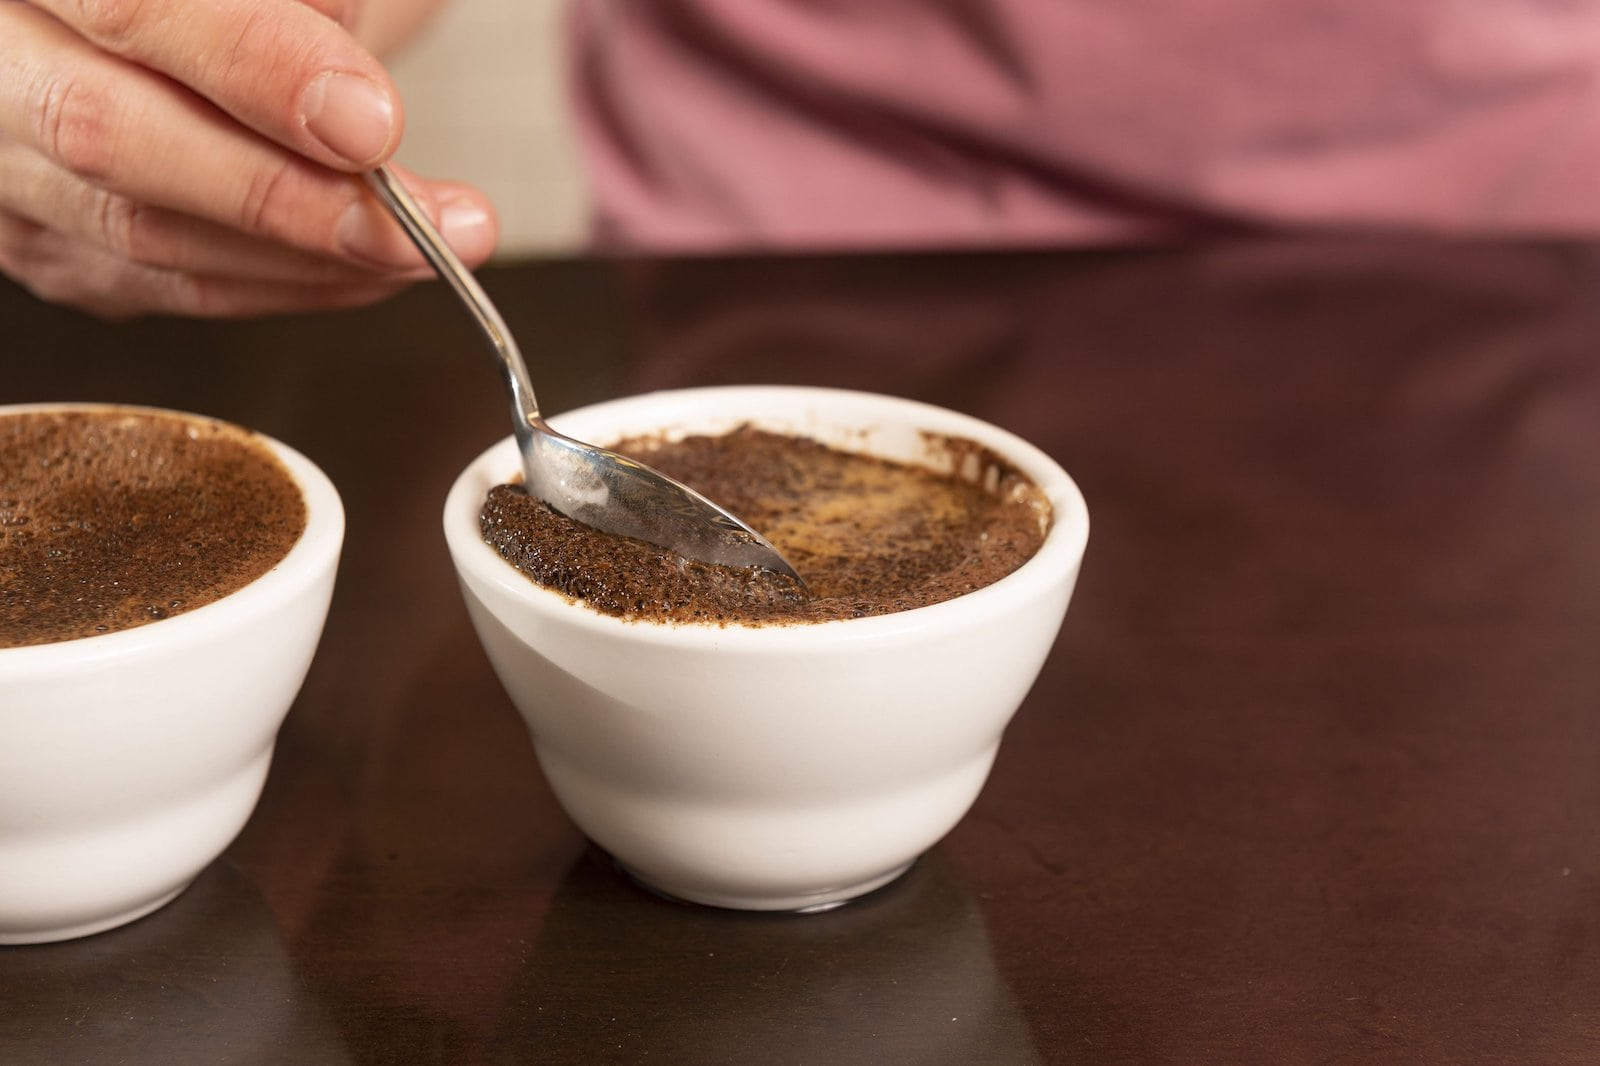 Breaking the crust on coffee cupping bowls